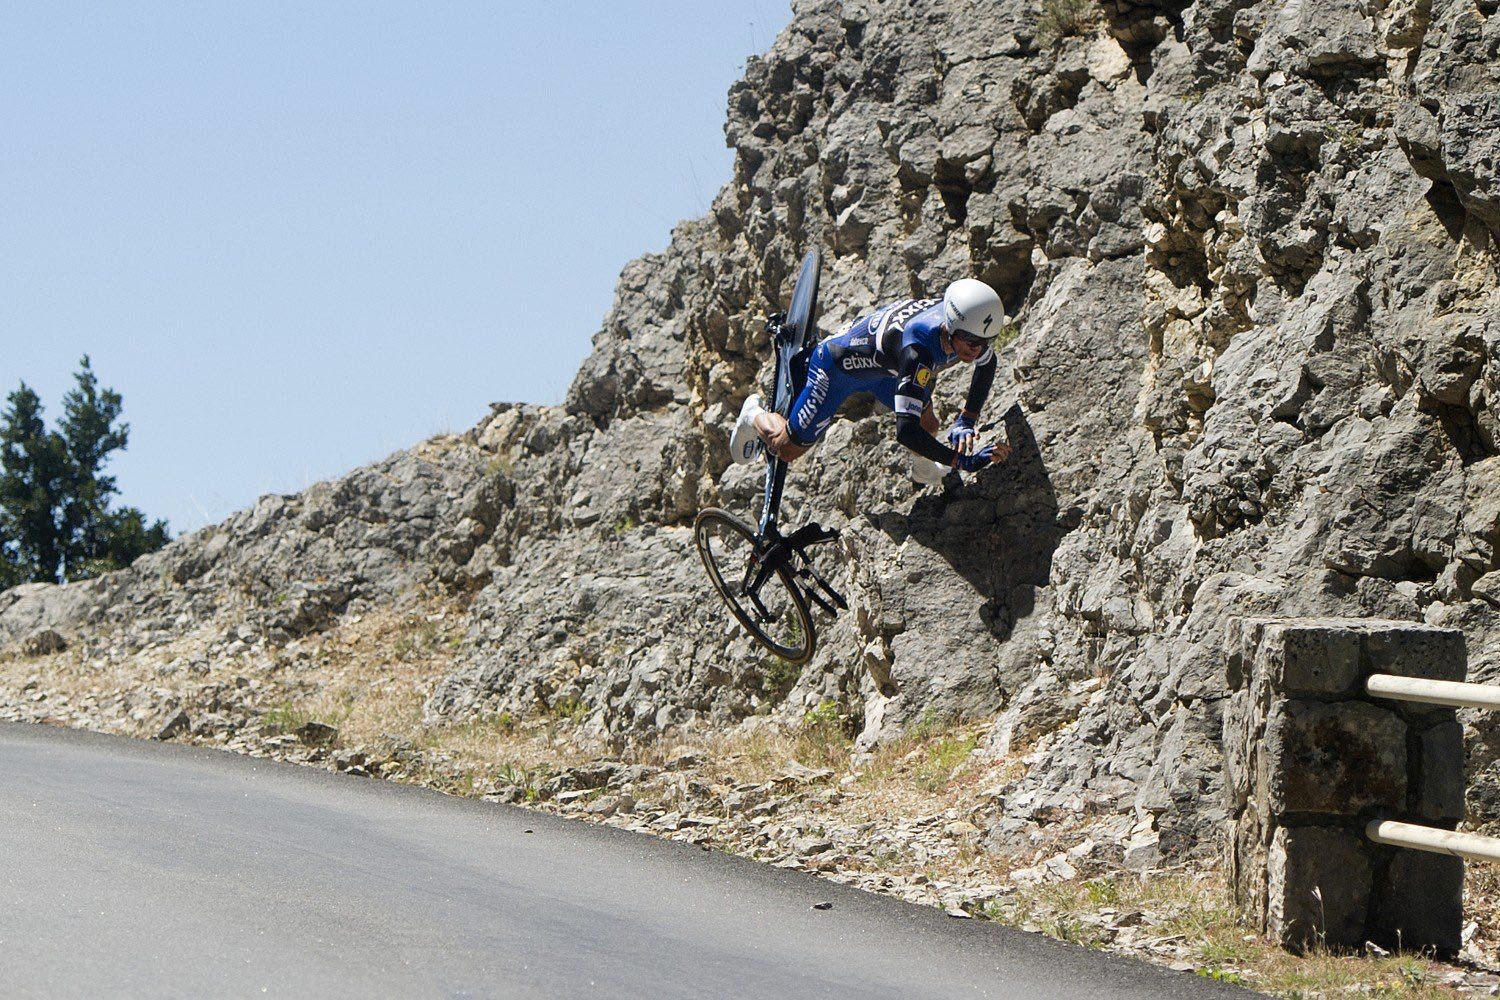 """Etixx - Quick-Step op Twitter: """"""""I believe I can fly"""" - very likely crossed @alafpolak's mind today in #TDF2016. Fortunately, he was left unscathed. https://t.co/VK2CkSVG4Z"""""""